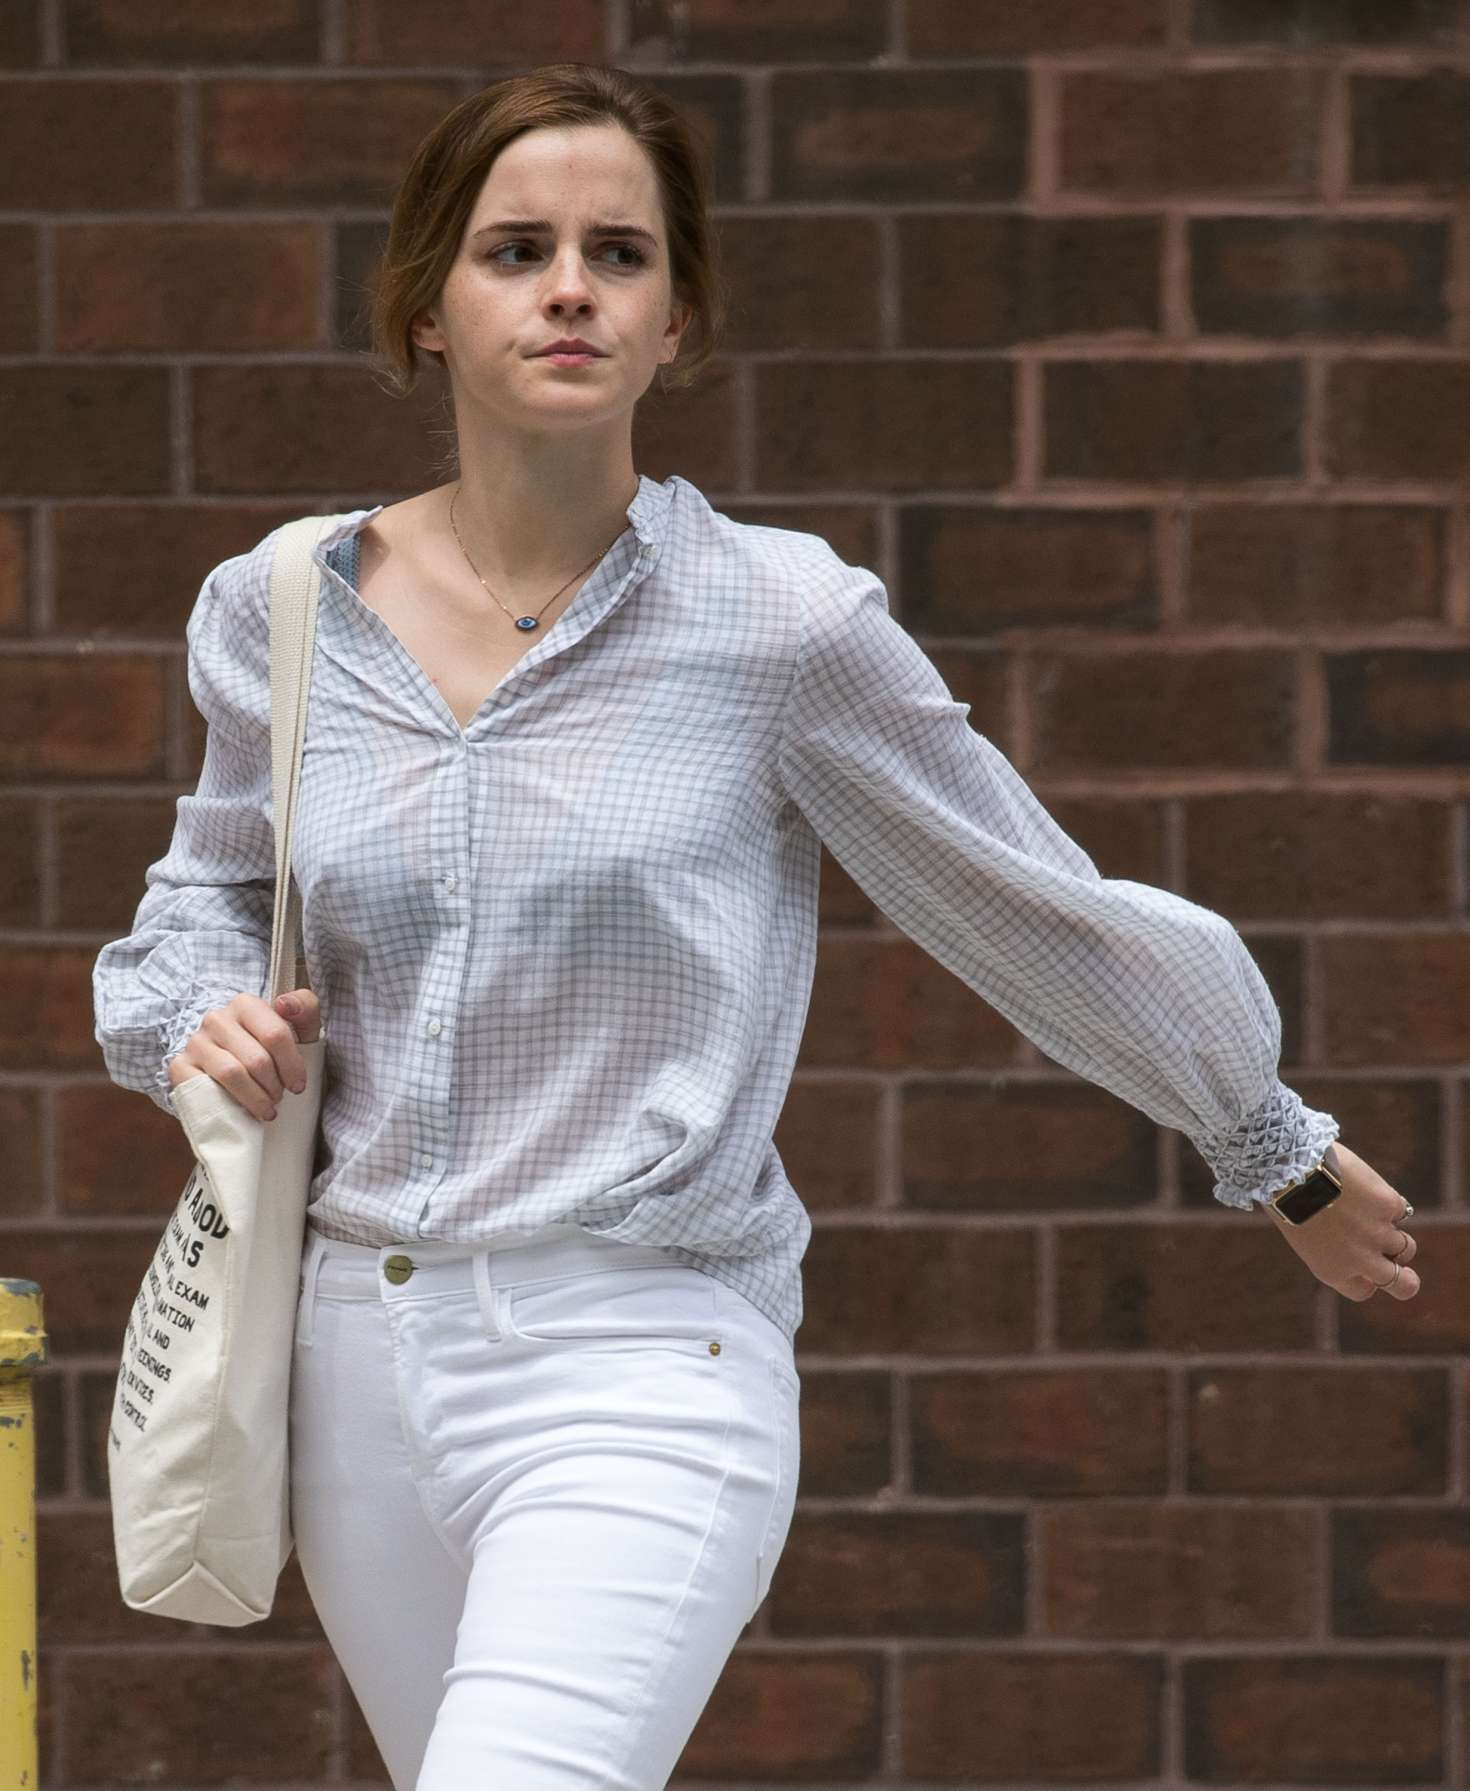 emma watson out and about in new york city 20 gotceleb